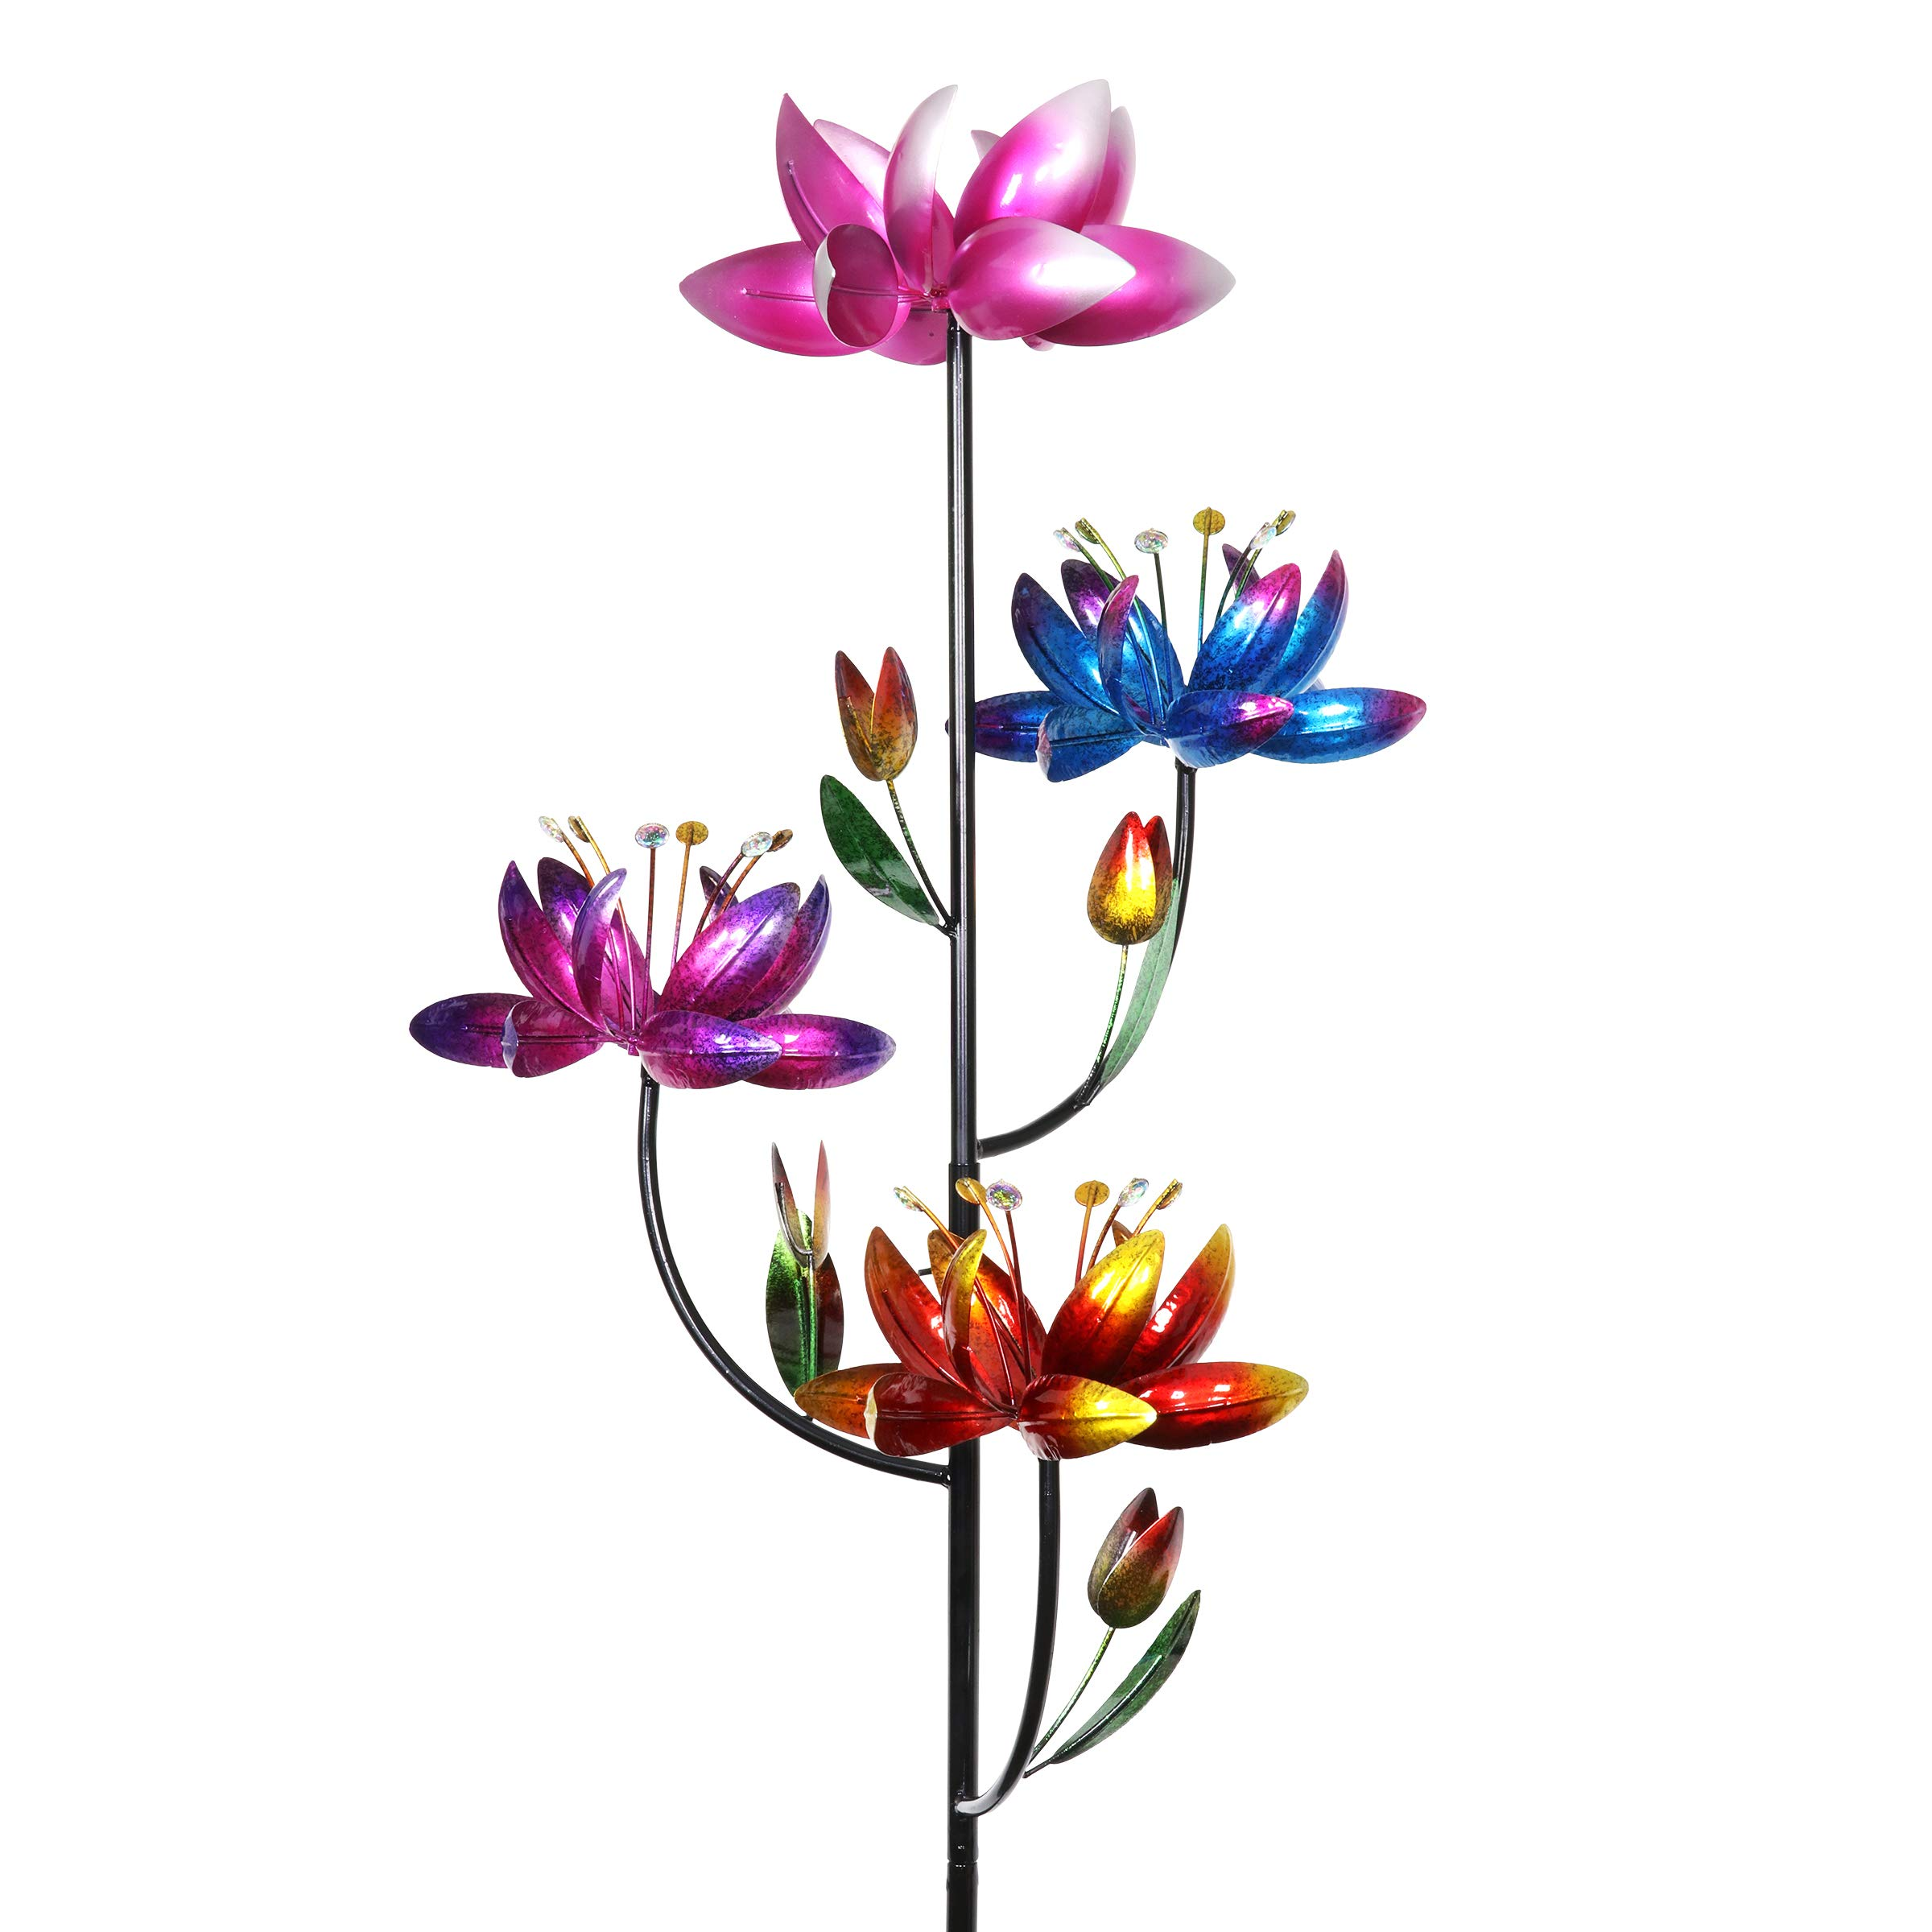 Exhart Quadruple Lotus Flower Wind Spinners Garden Stake in Bronze - 4 Metallic Flower Spinners in Colorful Red, Purple and Pink Metal Design Spin - Yard Art Décor, 20 by 92 Inches